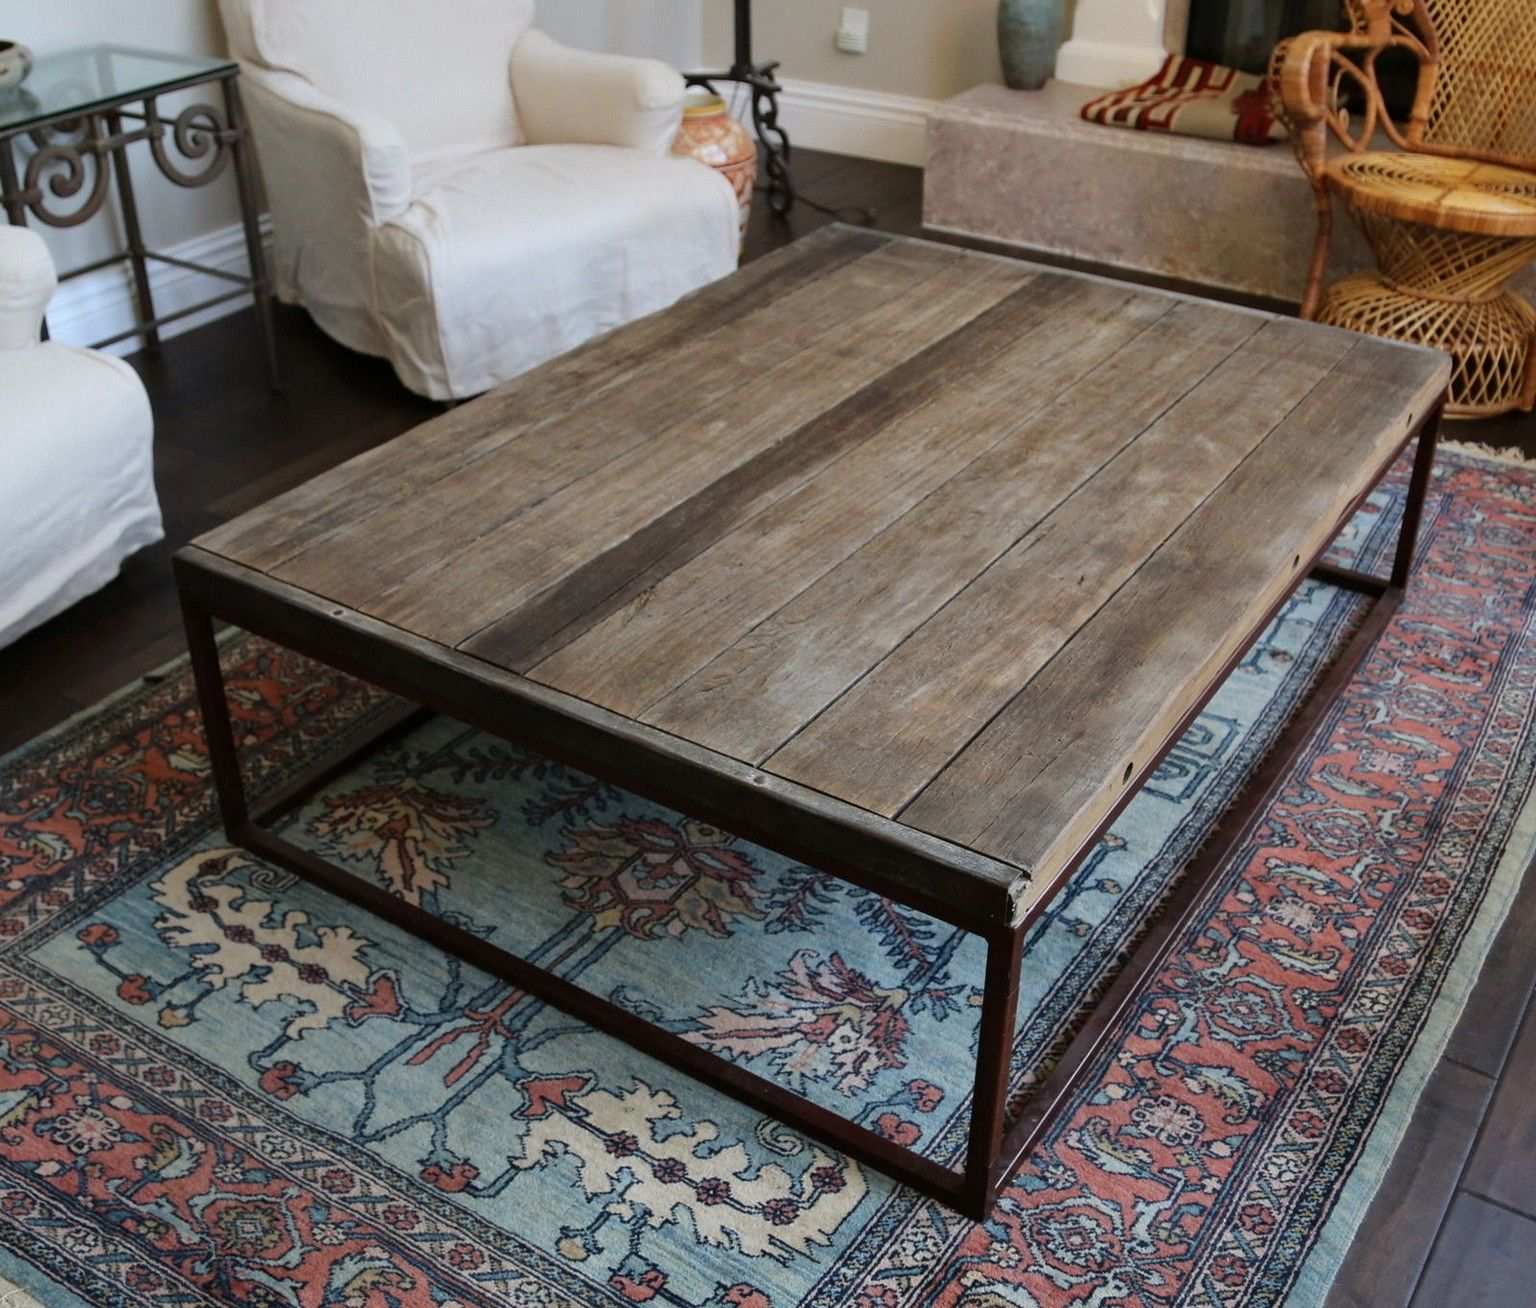 5 ideas for a do it yourself coffee table lets do it decorating 5 ideas for a do it yourself coffee table lets do it coffeetable homedecor solutioingenieria Images